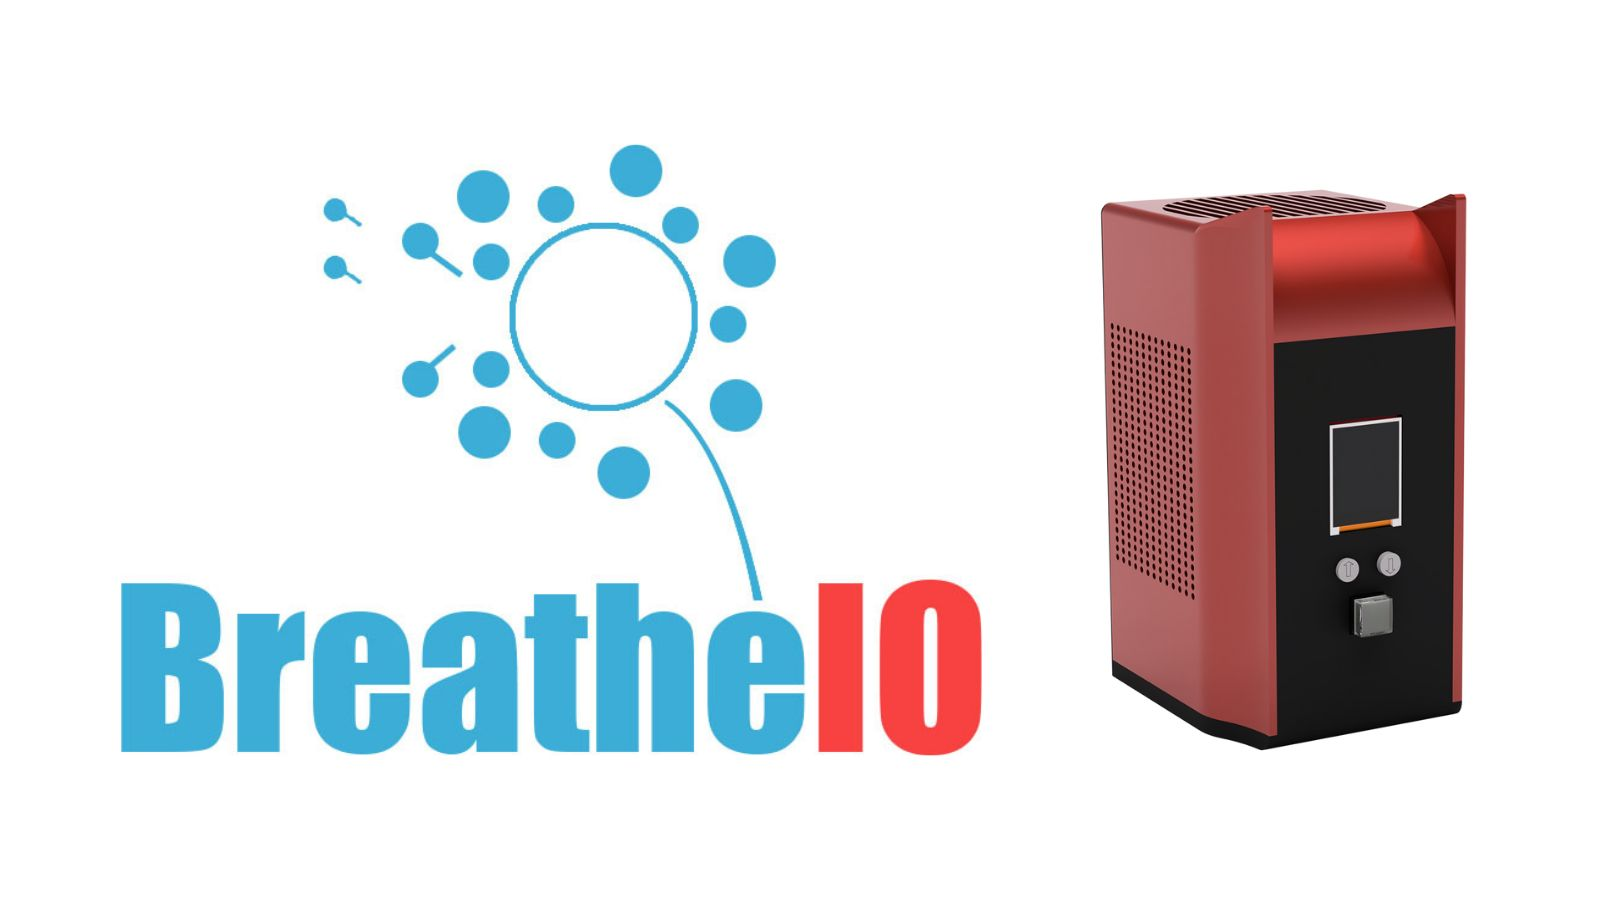 /interview-with-ceo-of-breatheio-startup-of-the-year-in-lahore-nominee-r39537he feature image